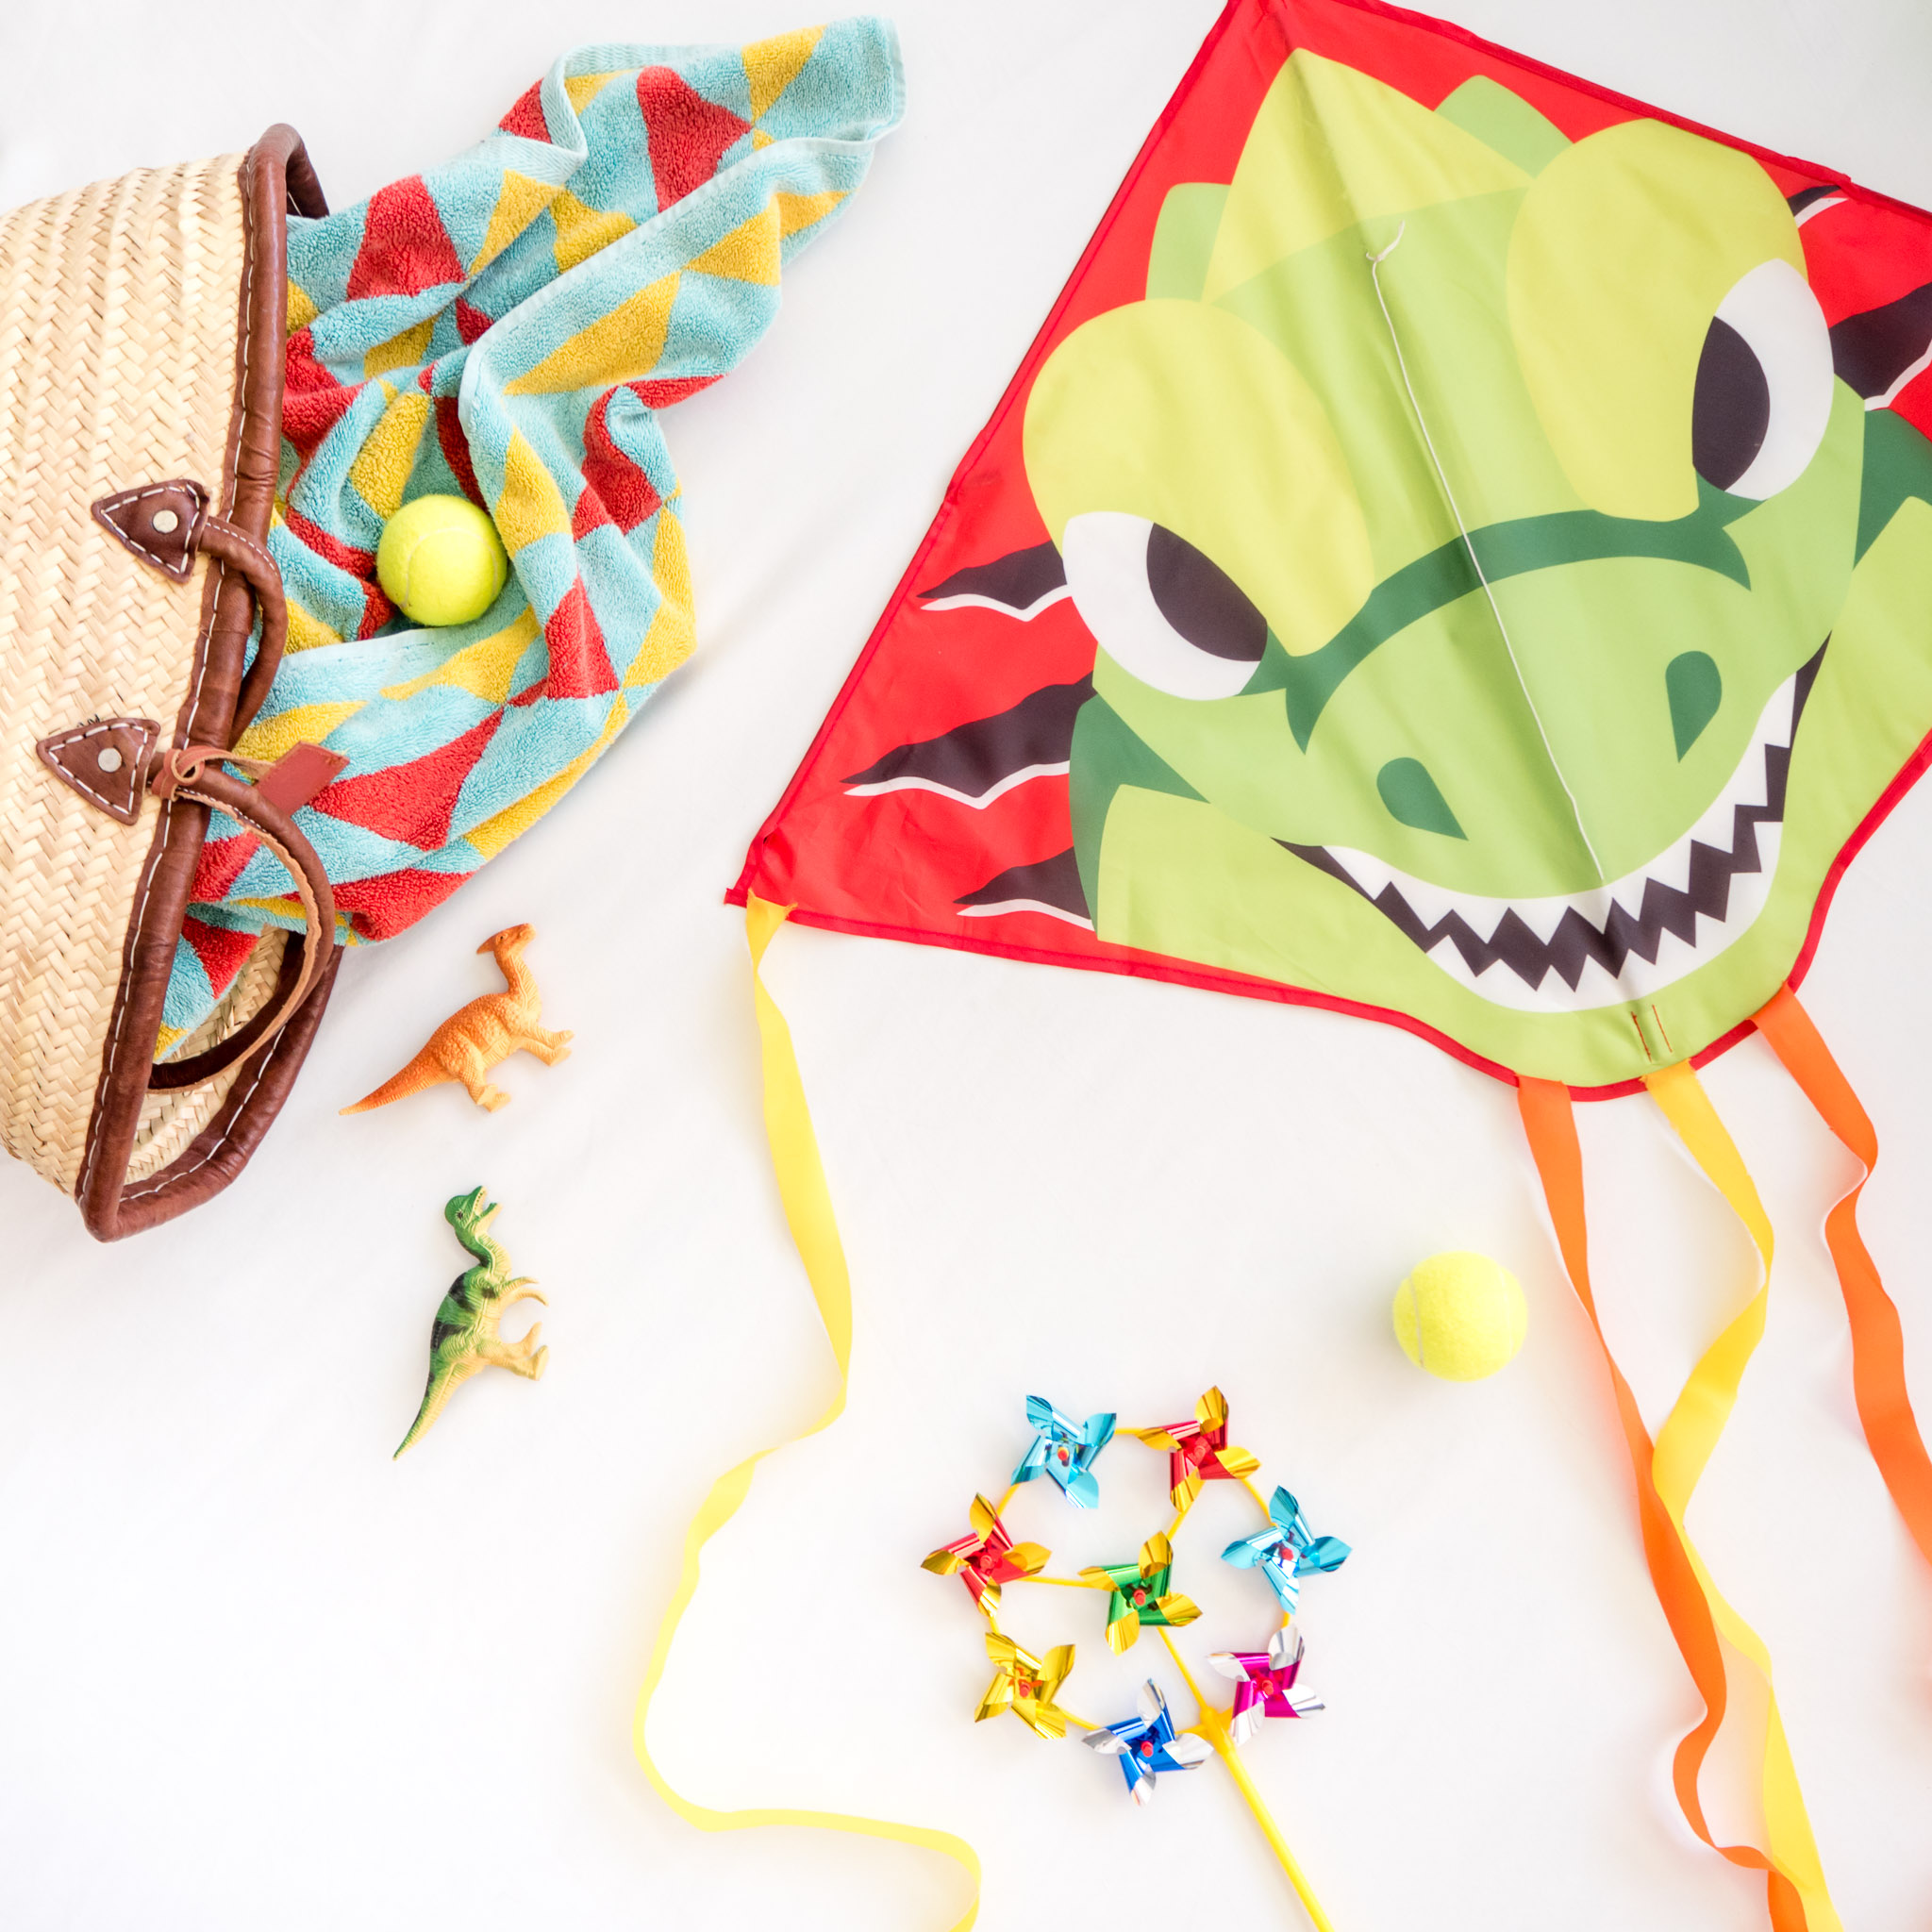 Dinosaur Kite Design by Zoom Kites